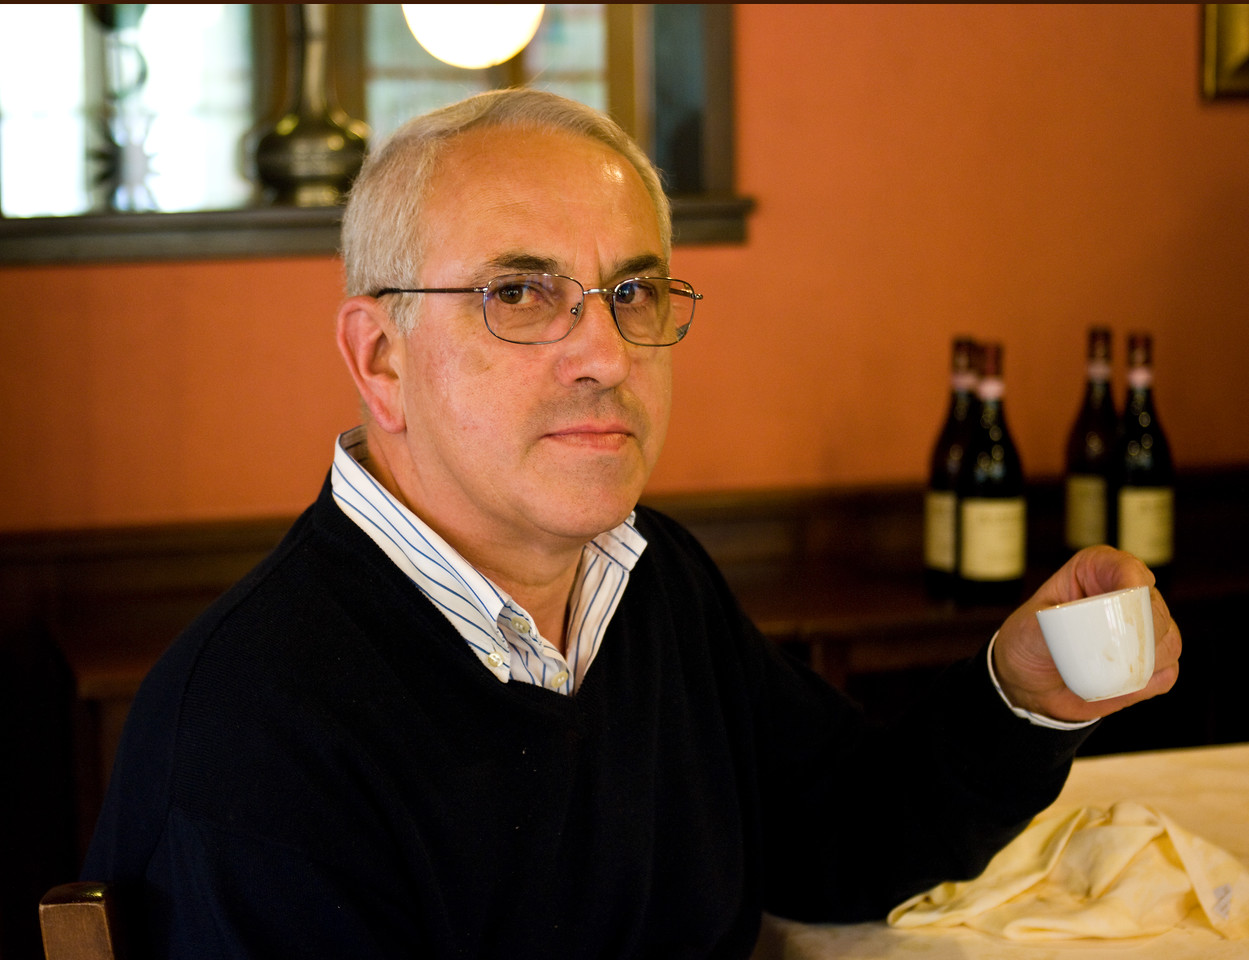 Maurilio Palladino, owner and winemaker of the Palladino winery in the Piedmont wine region of Italy. The Palladino family has been making wine in Serralunga d'Alba since 1870.